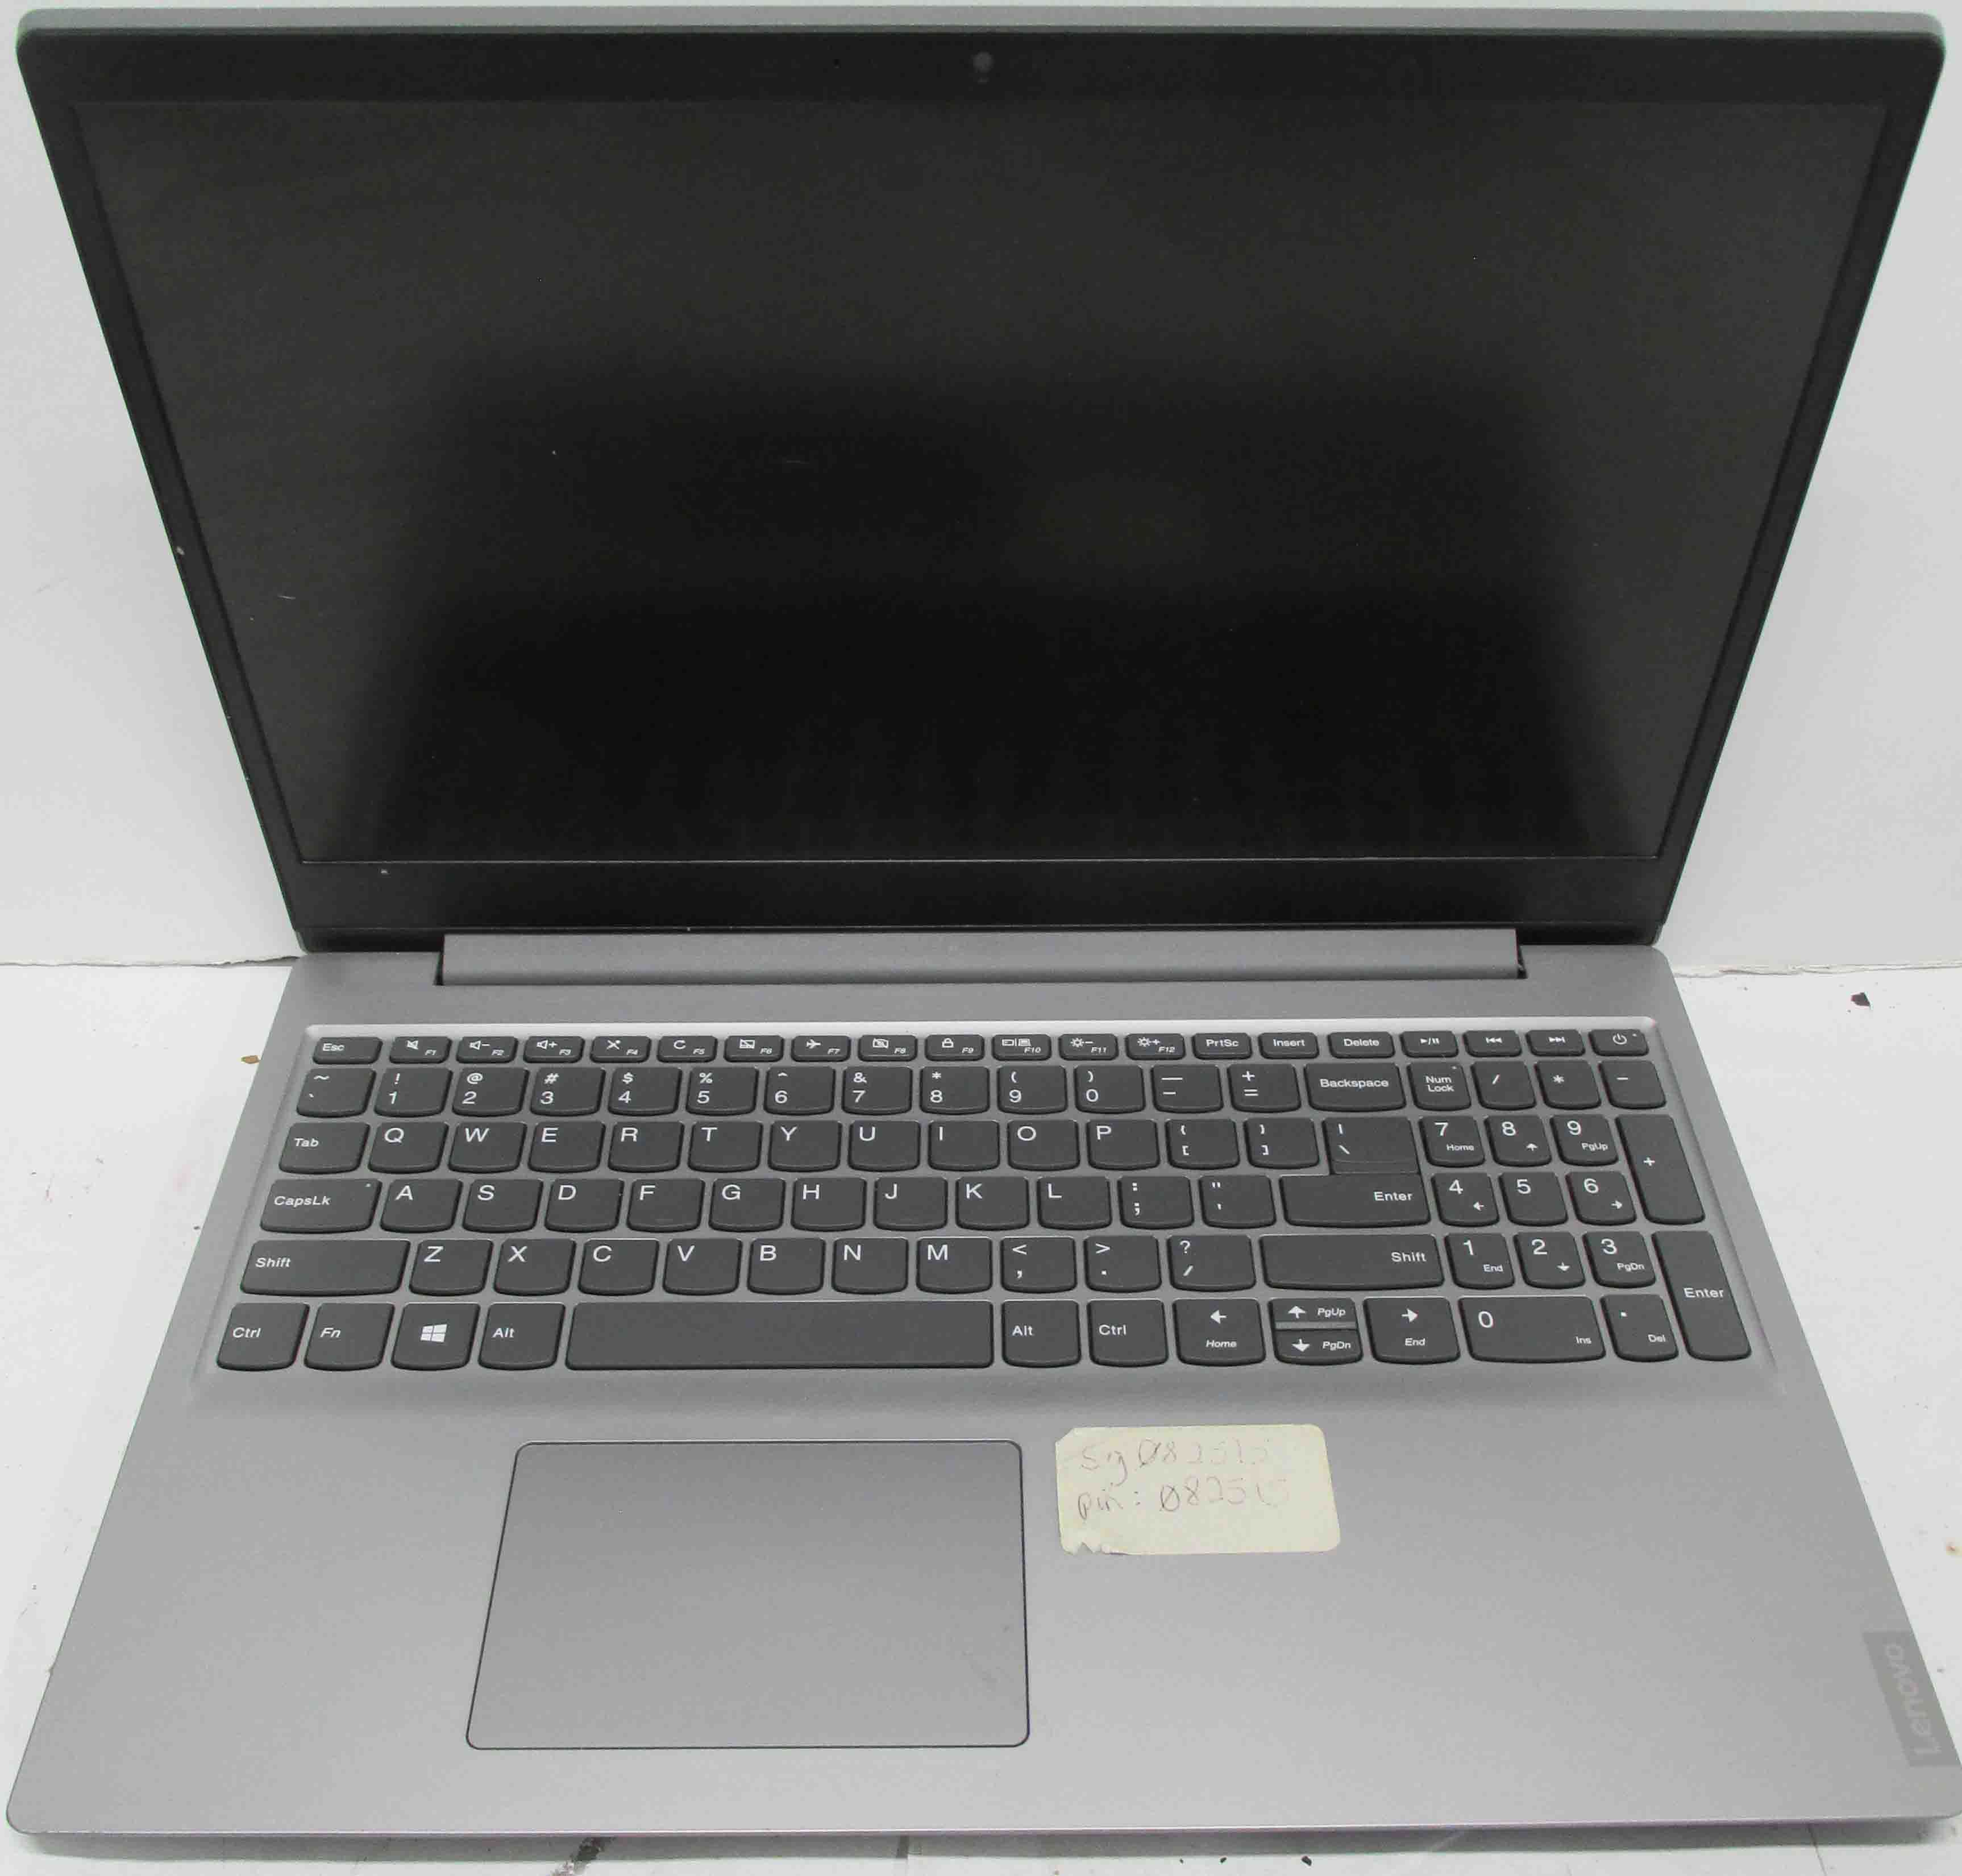 Lenovo Idea Pad S145-15API Laptop with Power Supply/Charger - 8GB RAM, 256GB SSD